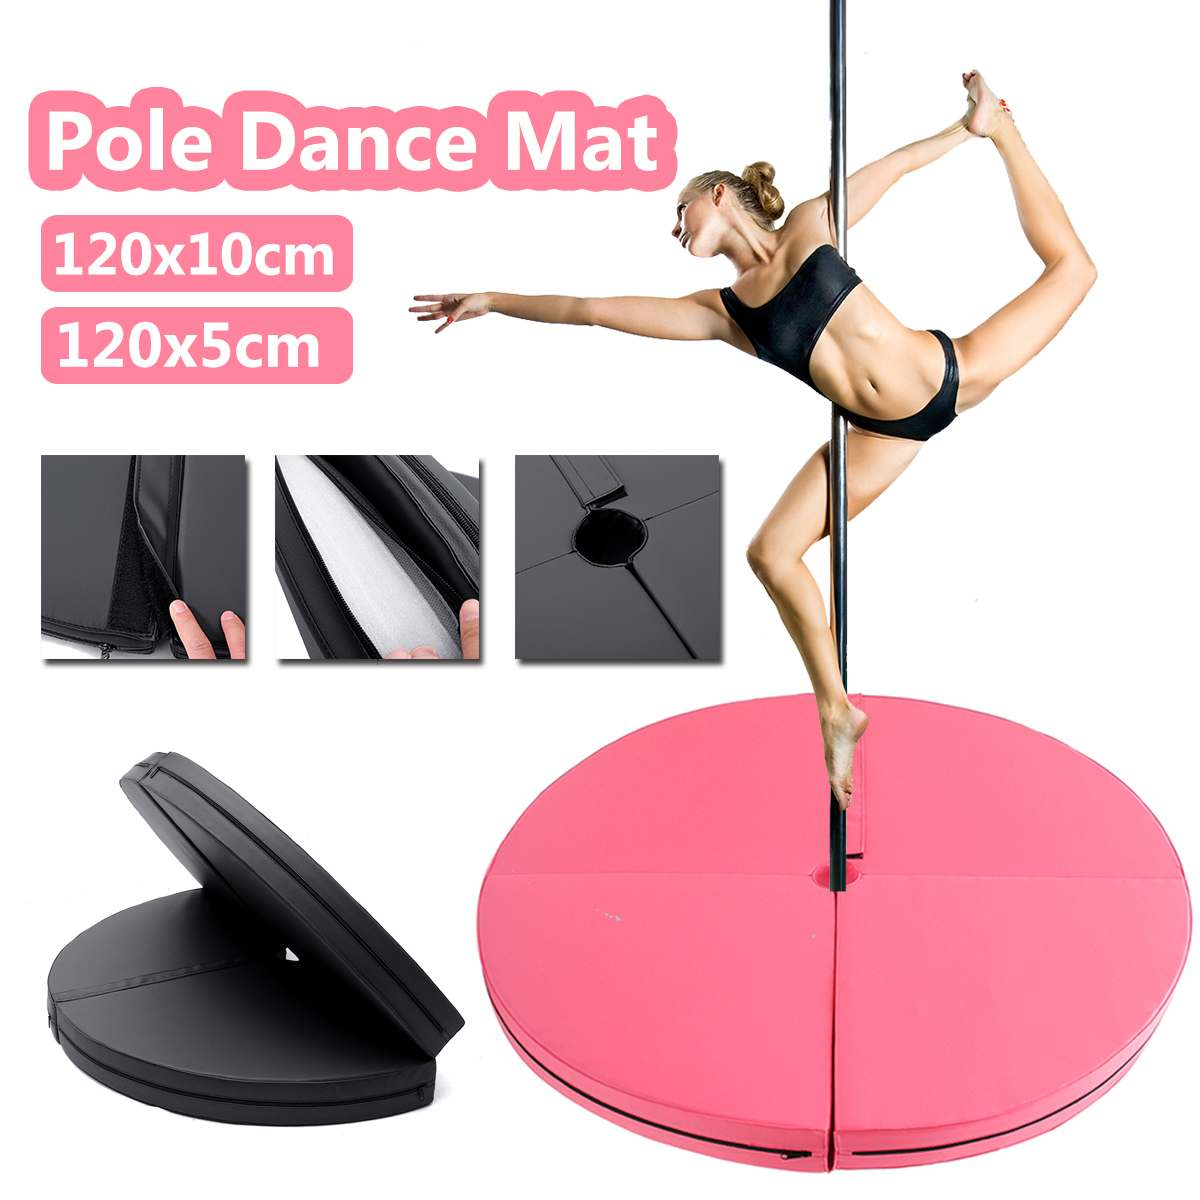 120x10cm PU Pole Dance Mat Skid-proof Fitness Yoga Mats Waterproof Thickened Round Dance Exercise Mat Folding Safety Gym Mat